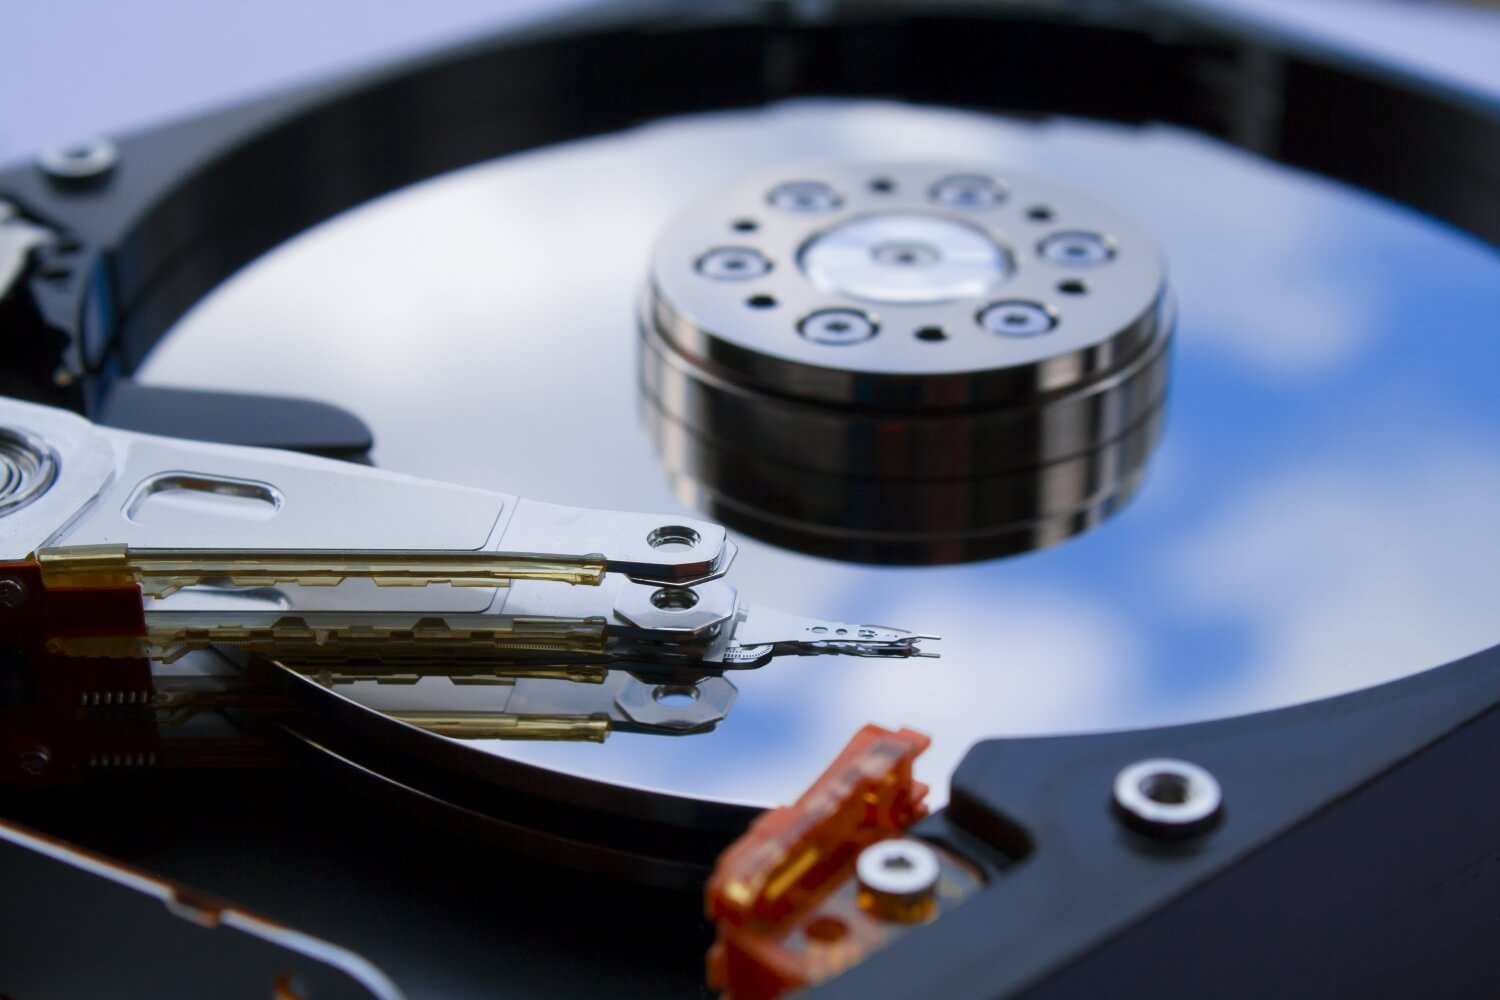 Microsoft launches Windows 10 File Recovery tool